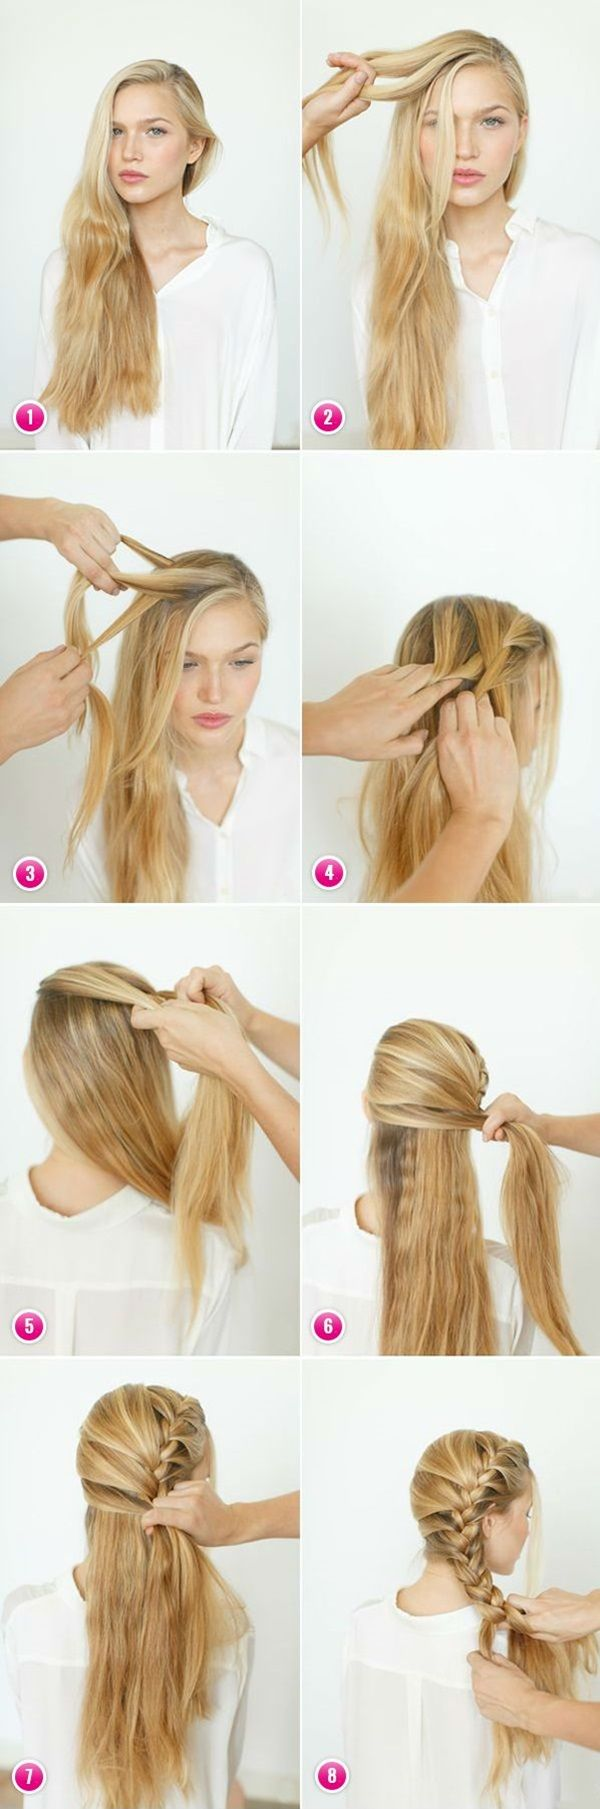 Cute Quick Hairstyles 20 stunning short hair styles for prom ideas with pictures Best 25 Fast Hairstyles Ideas Only On Pinterest Fast Easy Hairstyles Simple School Hairstyles And Super Easy Hairstyles